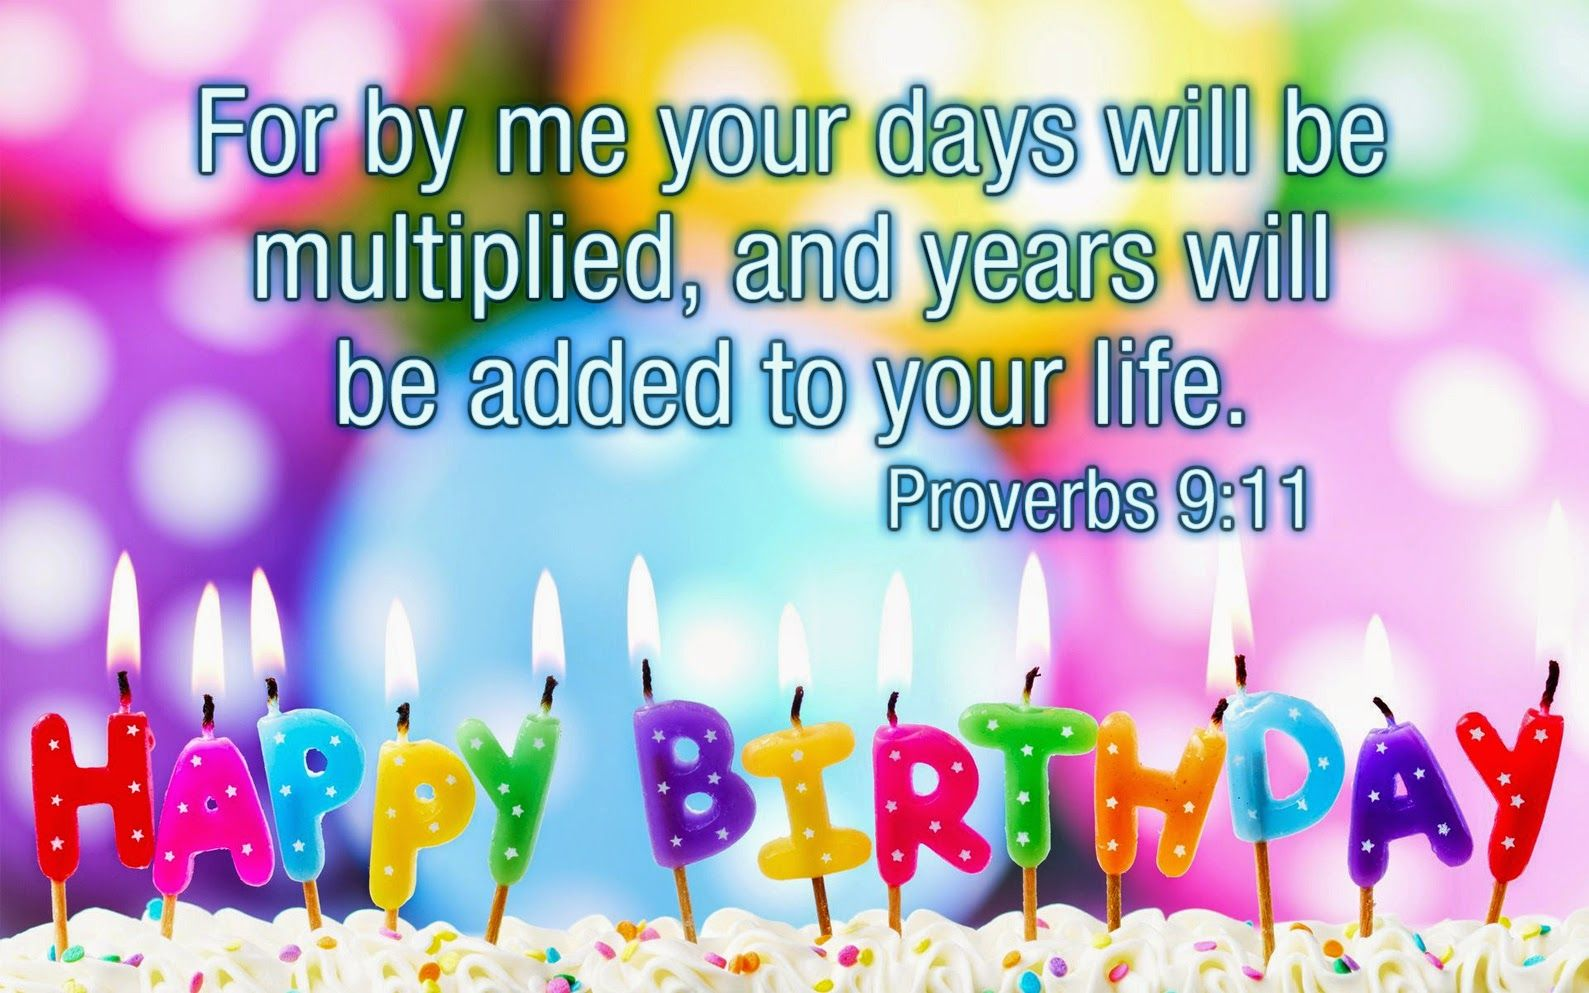 Top Birthday Bible Verse with Images | BestBibleVerse.com ...